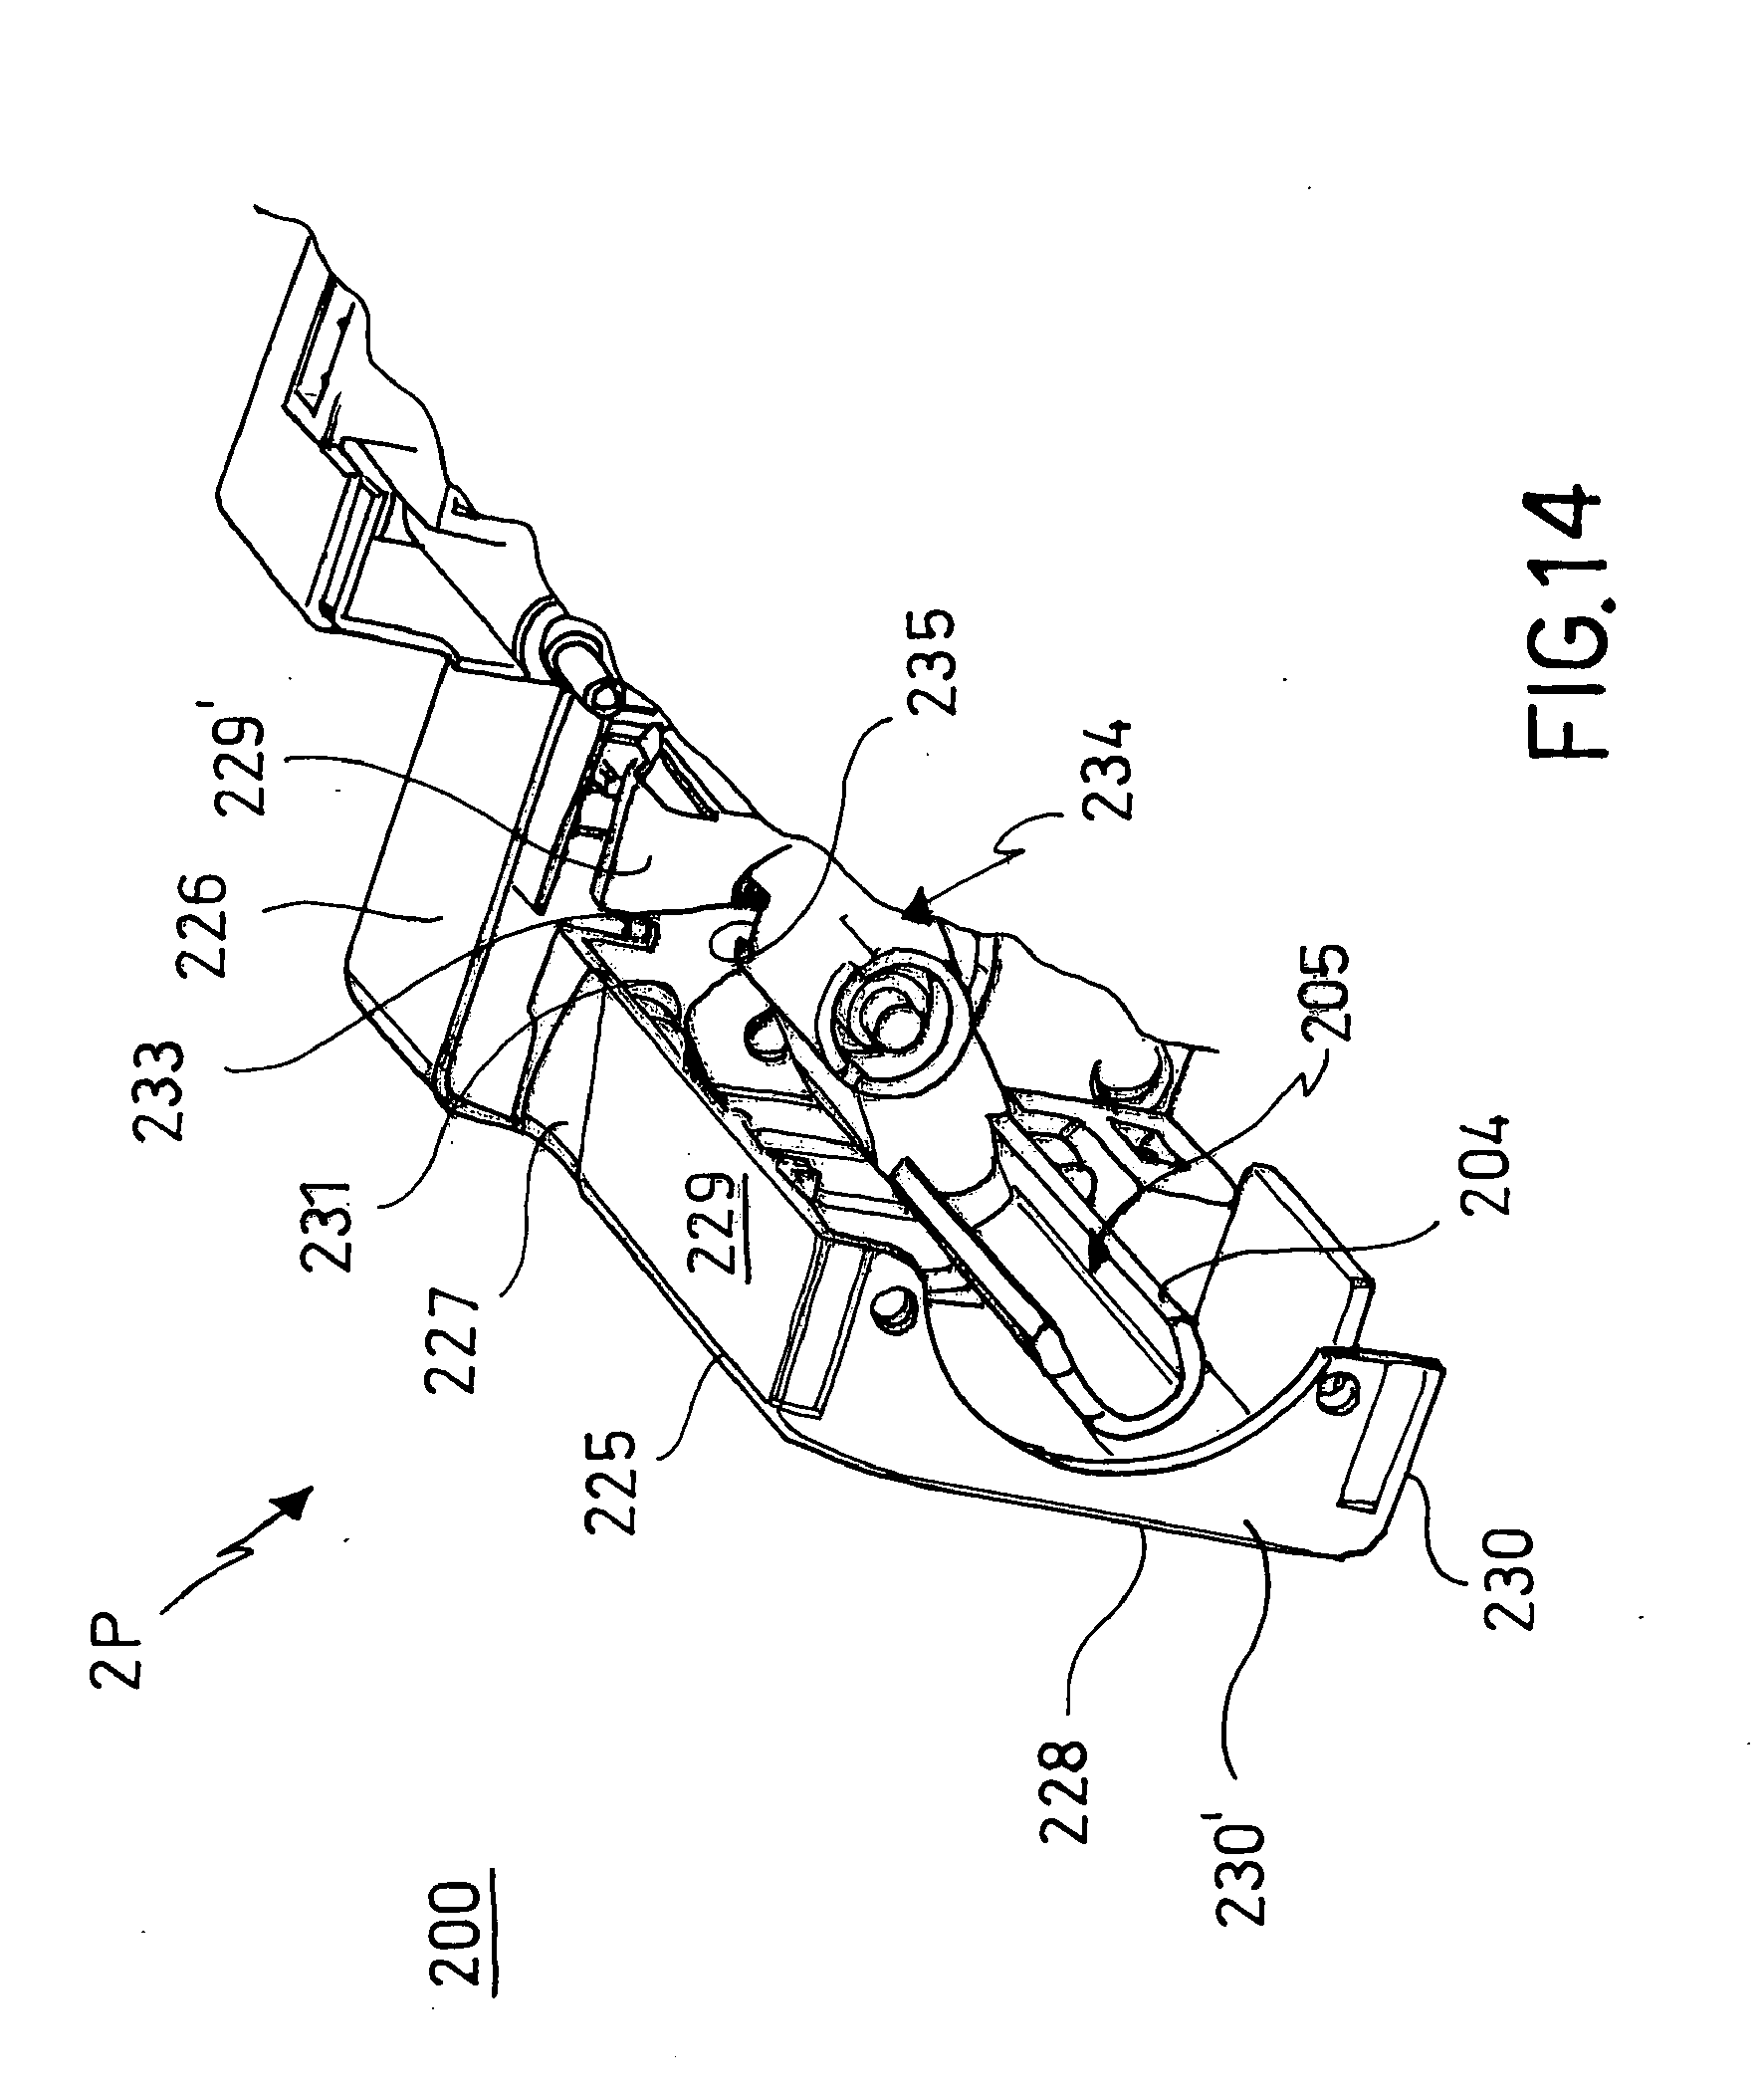 imgf0014 patent ep1950784a1 reset device for a safety electrical device,Hager Electrical Fuse Box